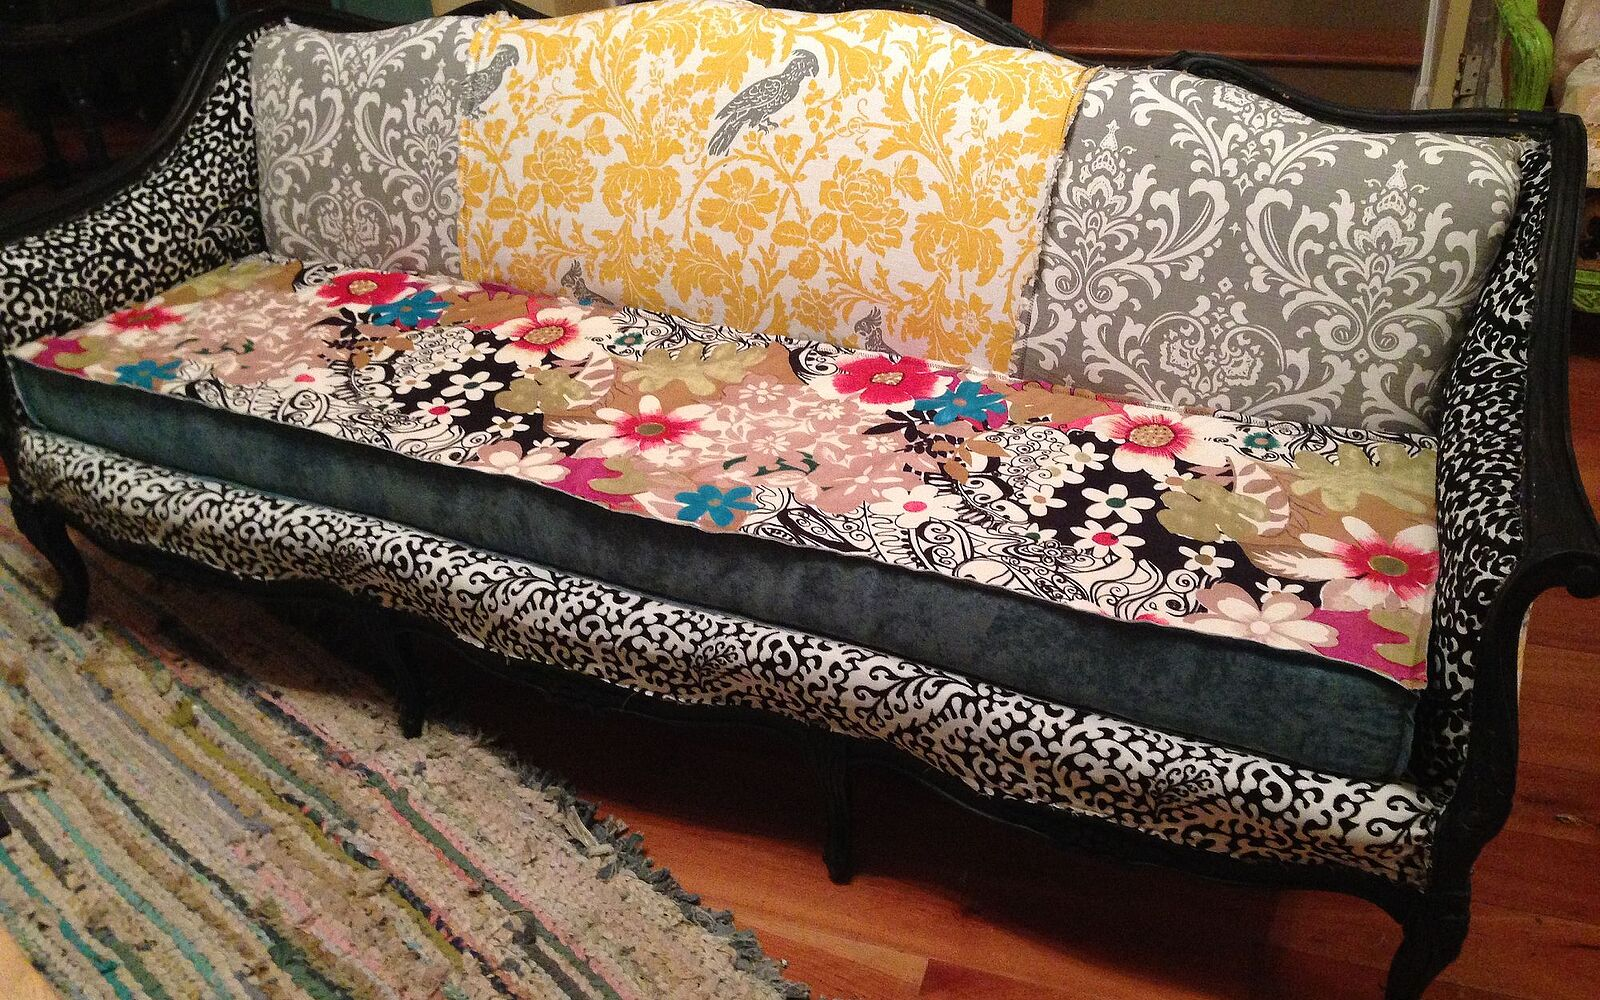 s hide your couch s wear and tear with these great ideas, From the dumpster to the living room